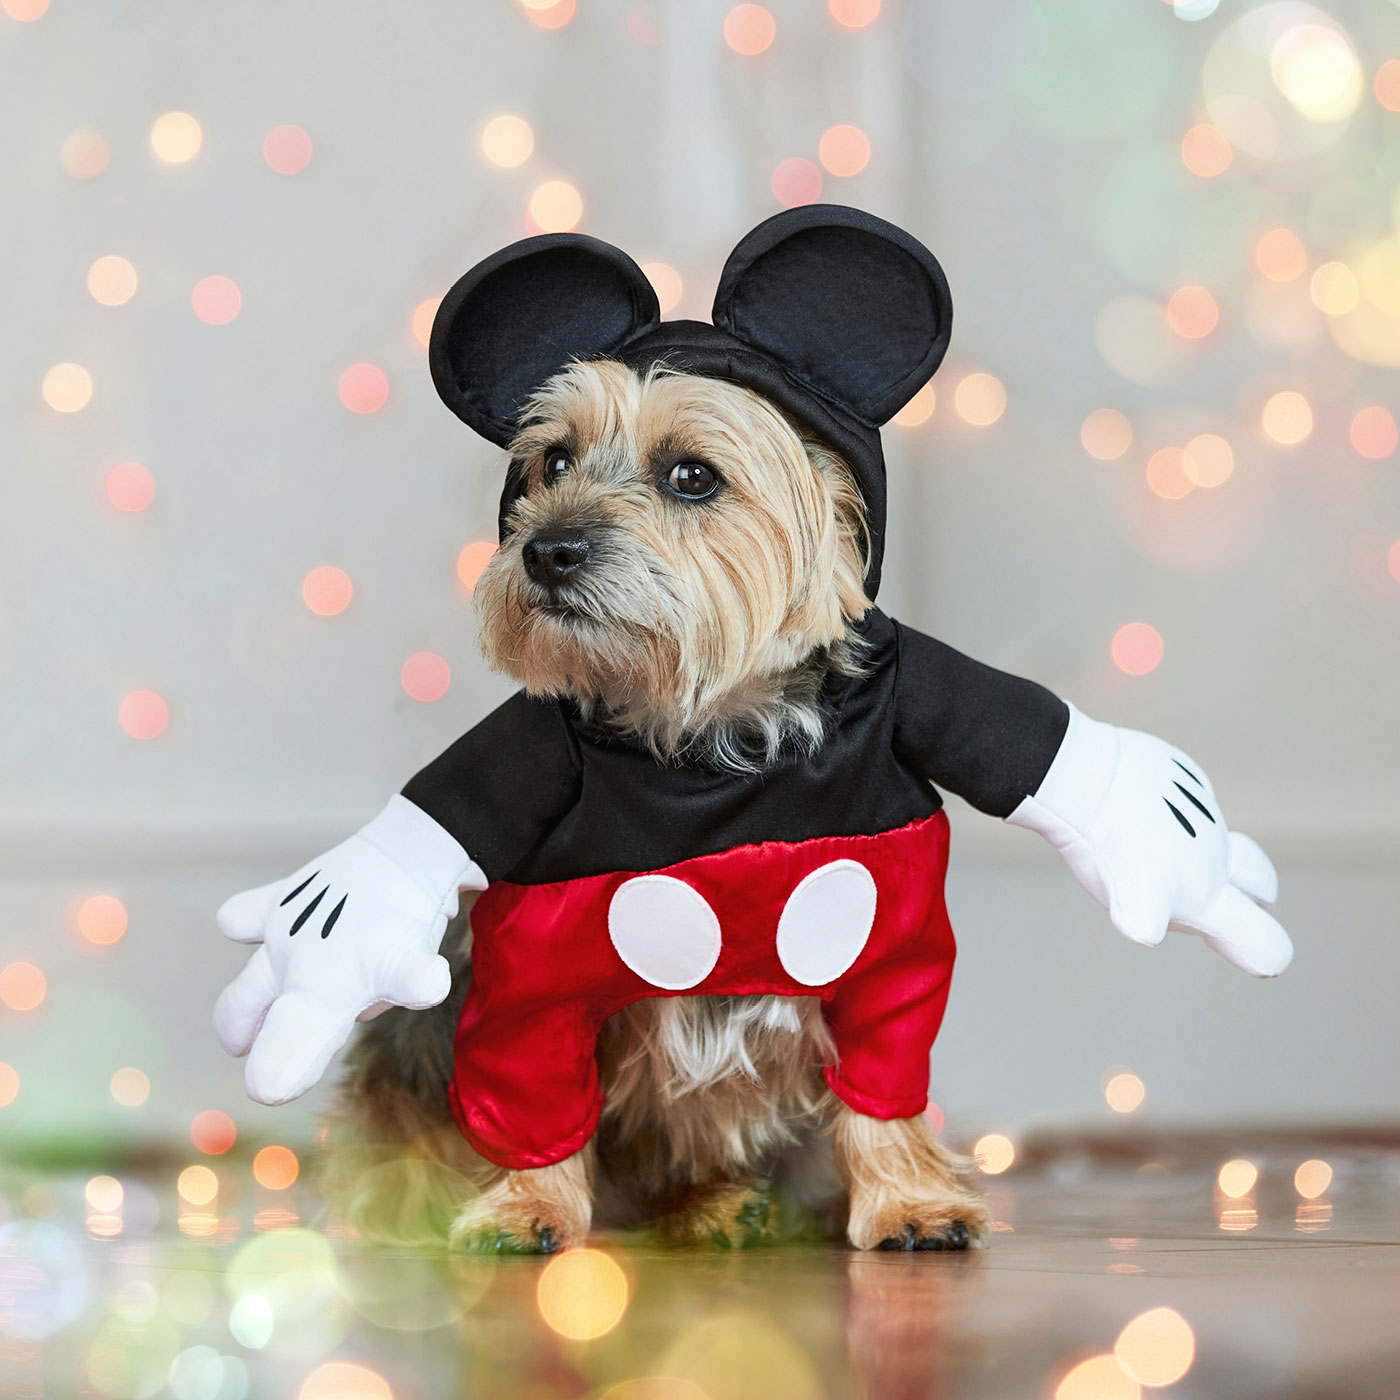 diesny dog costumes - Mickey mouse